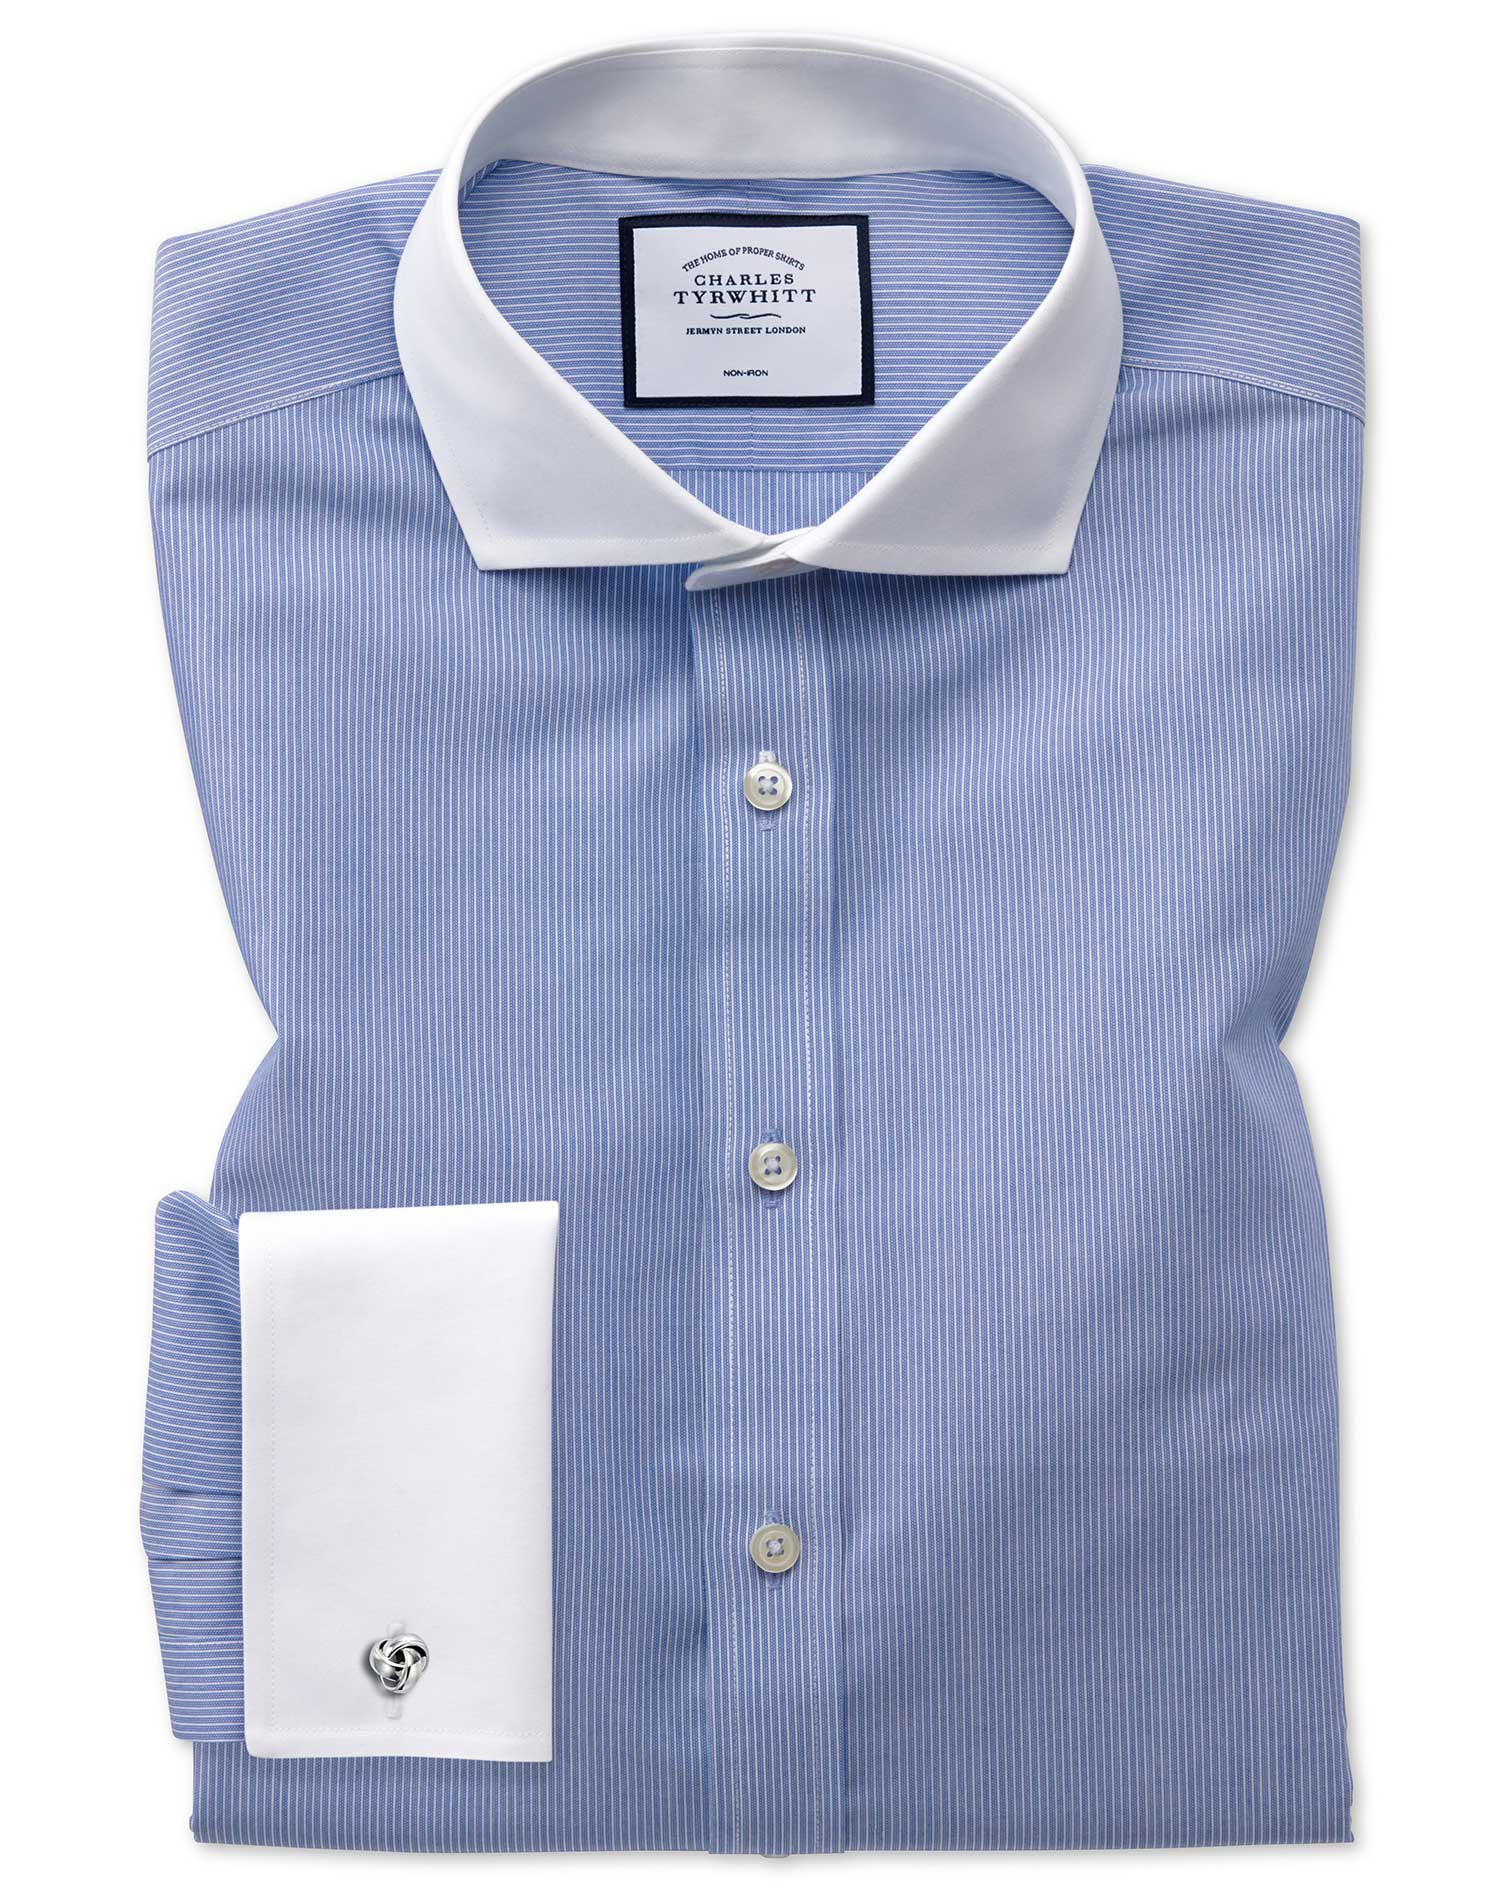 Slim Fit Non-Iron Winchester Blue Cotton Formal Shirt Double Cuff Size 17/37 by Charles Tyrwhitt